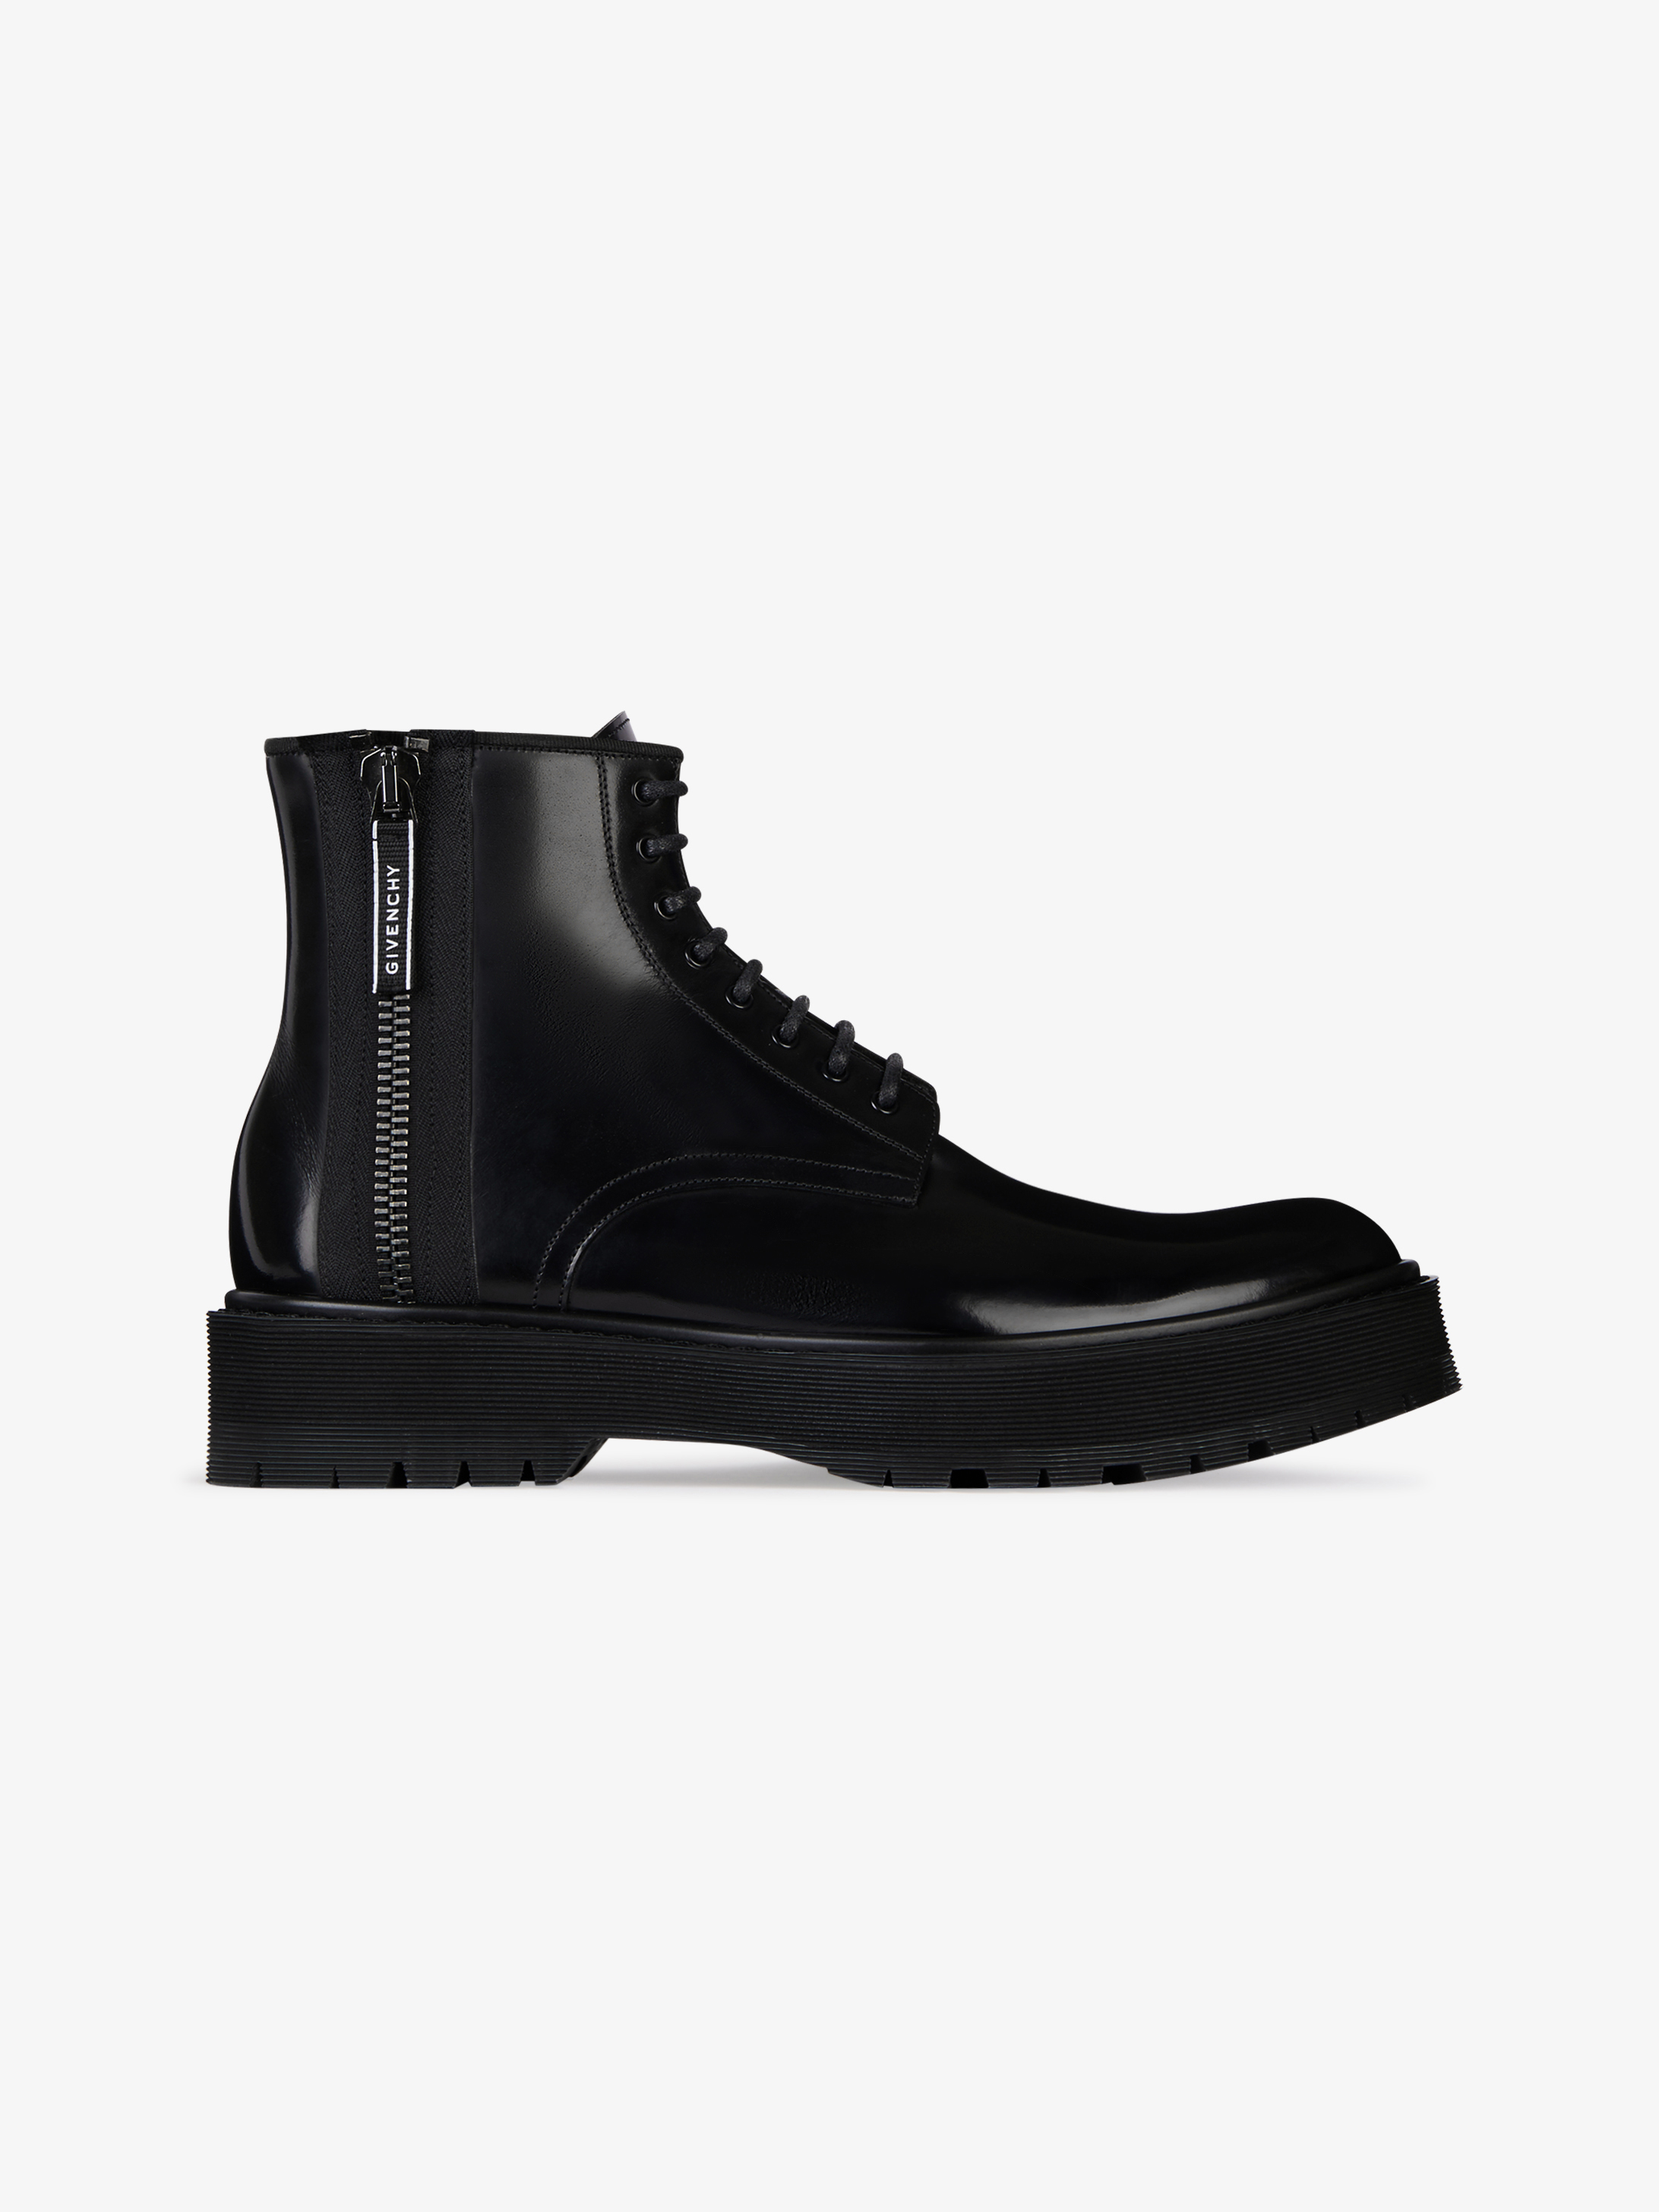 Camden boots in Spazzolato leather